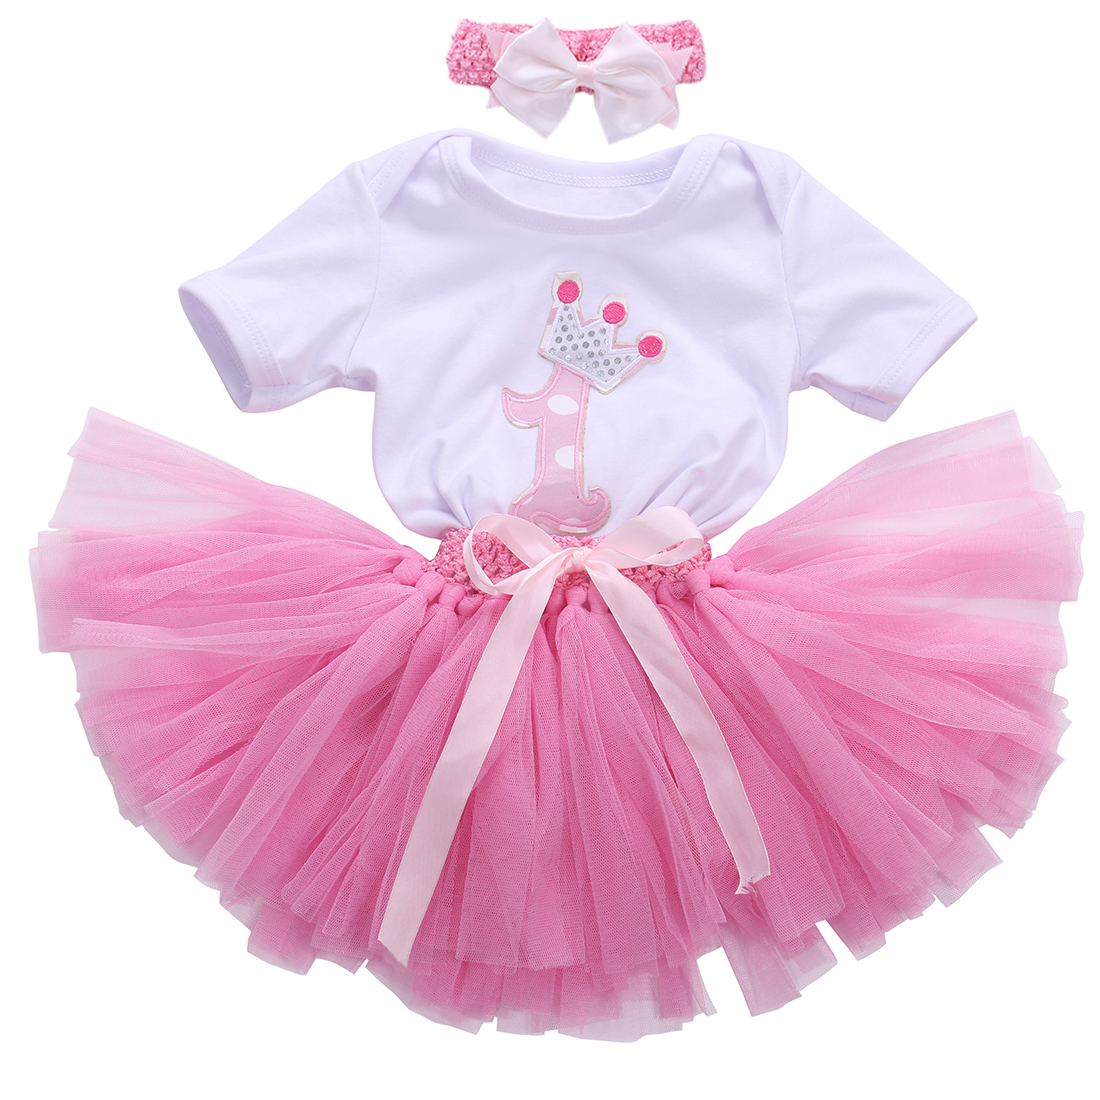 3Pcs Set Baby Girl Crown Tutu Dress Infant 1st Birthday Party Outfit Romper Bubble Skirt Headband Bebe Newborns Tulle Vestidos 1set baby girl polka dot headband romper tutu outfit party birthday costume 6 colors